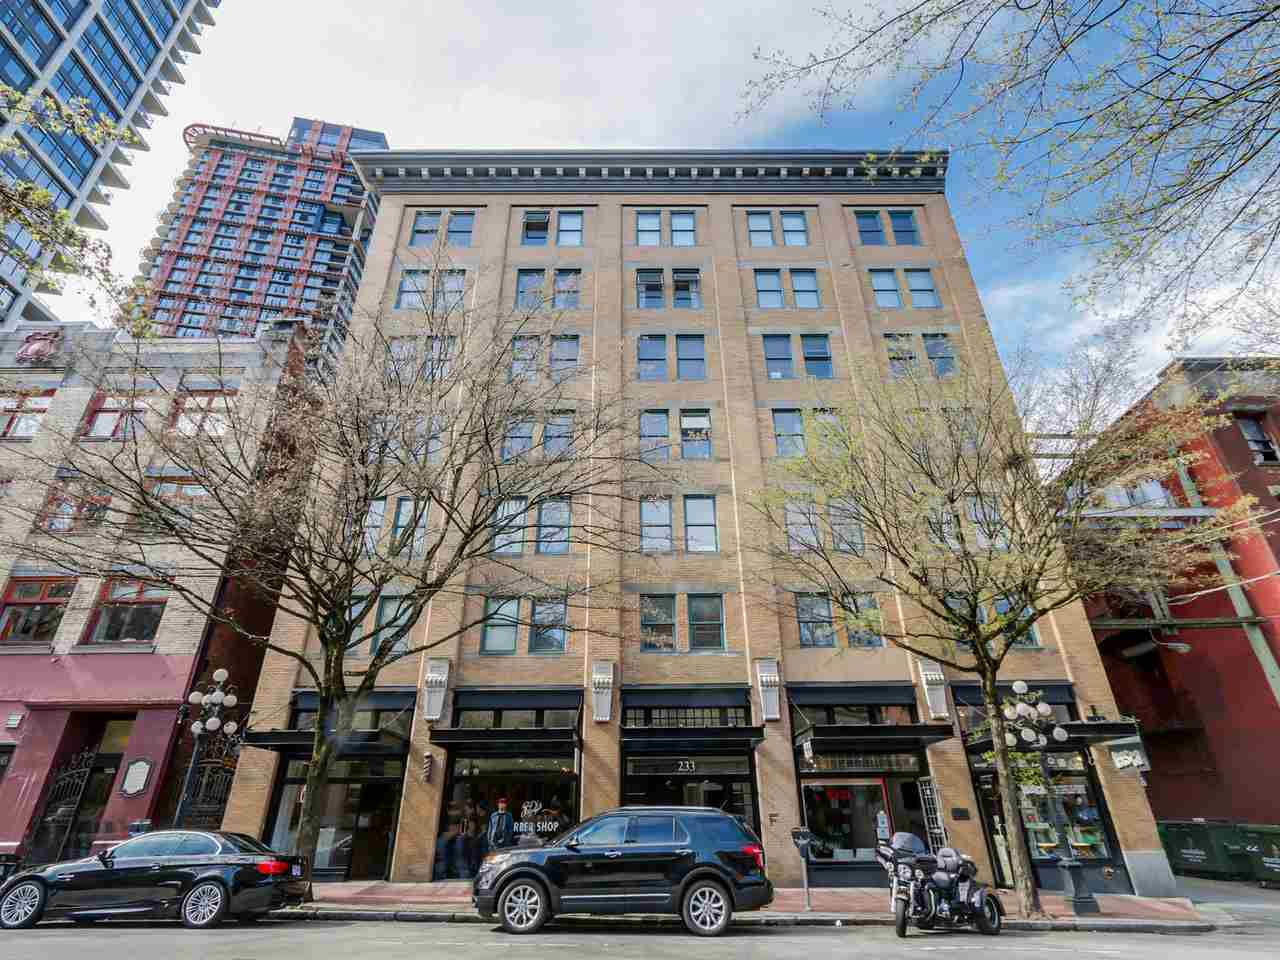 """Main Photo: 406 233 ABBOTT Street in Vancouver: Downtown VW Condo for sale in """"ABBOTT PLACE"""" (Vancouver West)  : MLS®# R2112745"""